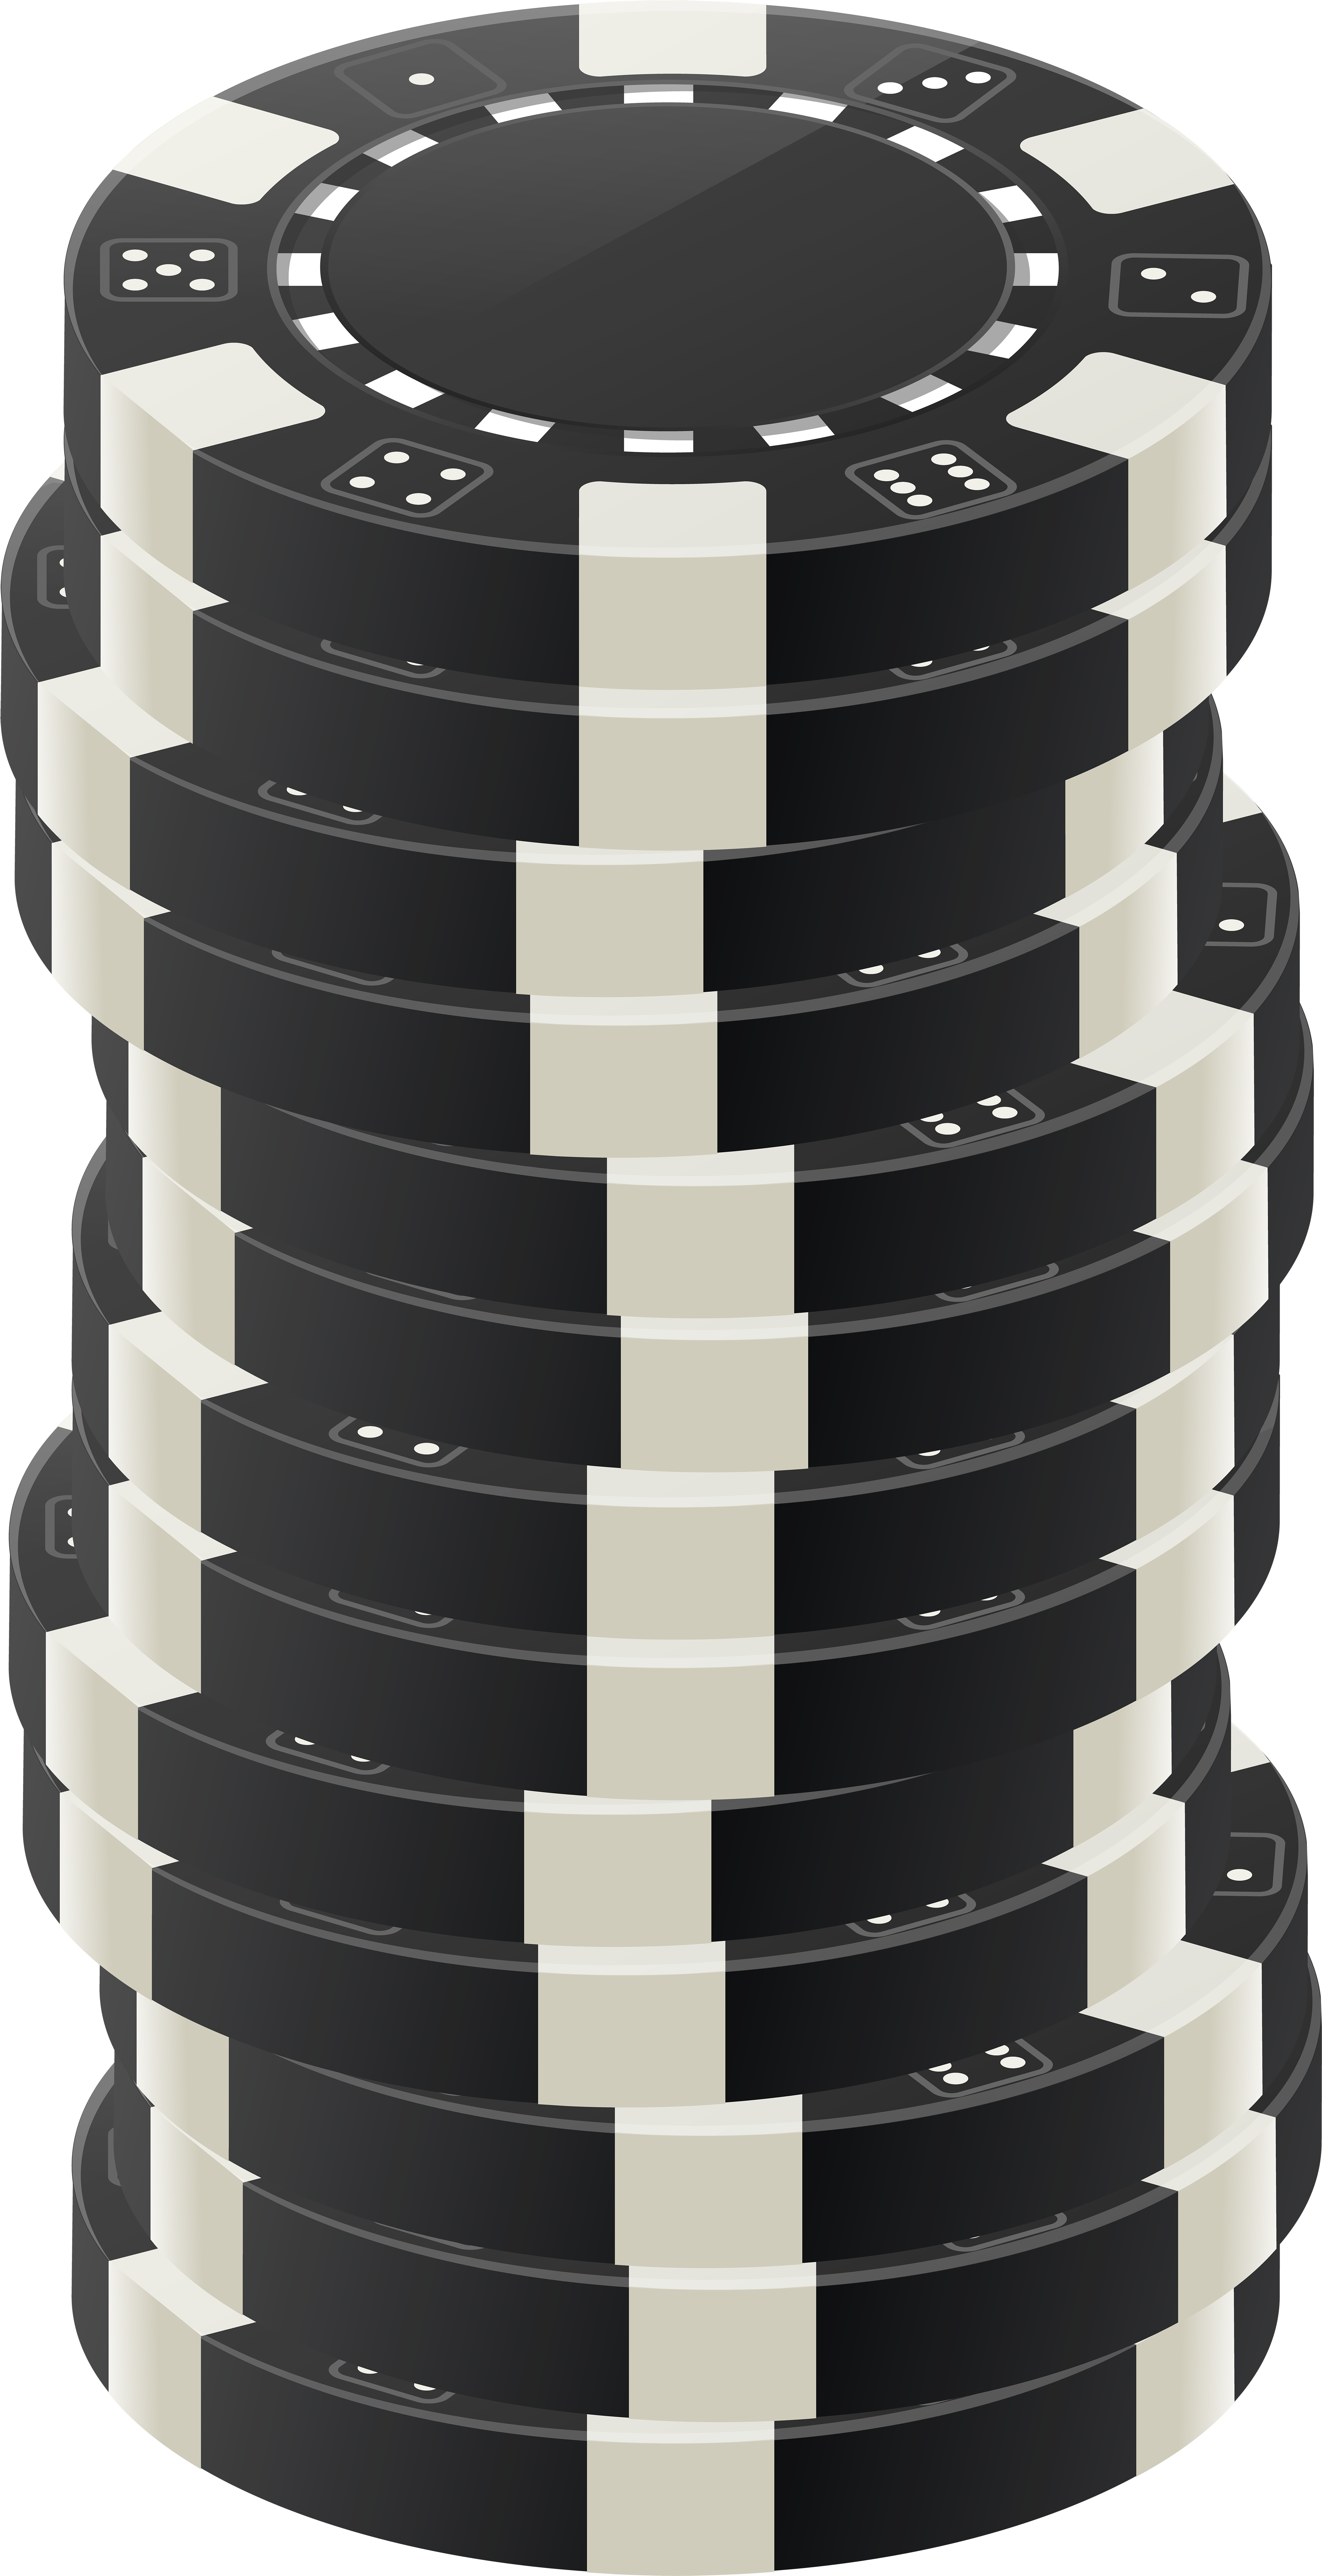 Black and white poker chip stack clipart svg library download HD Black Poker Chips Png Clip Art - Black White Poker Chip ... svg library download